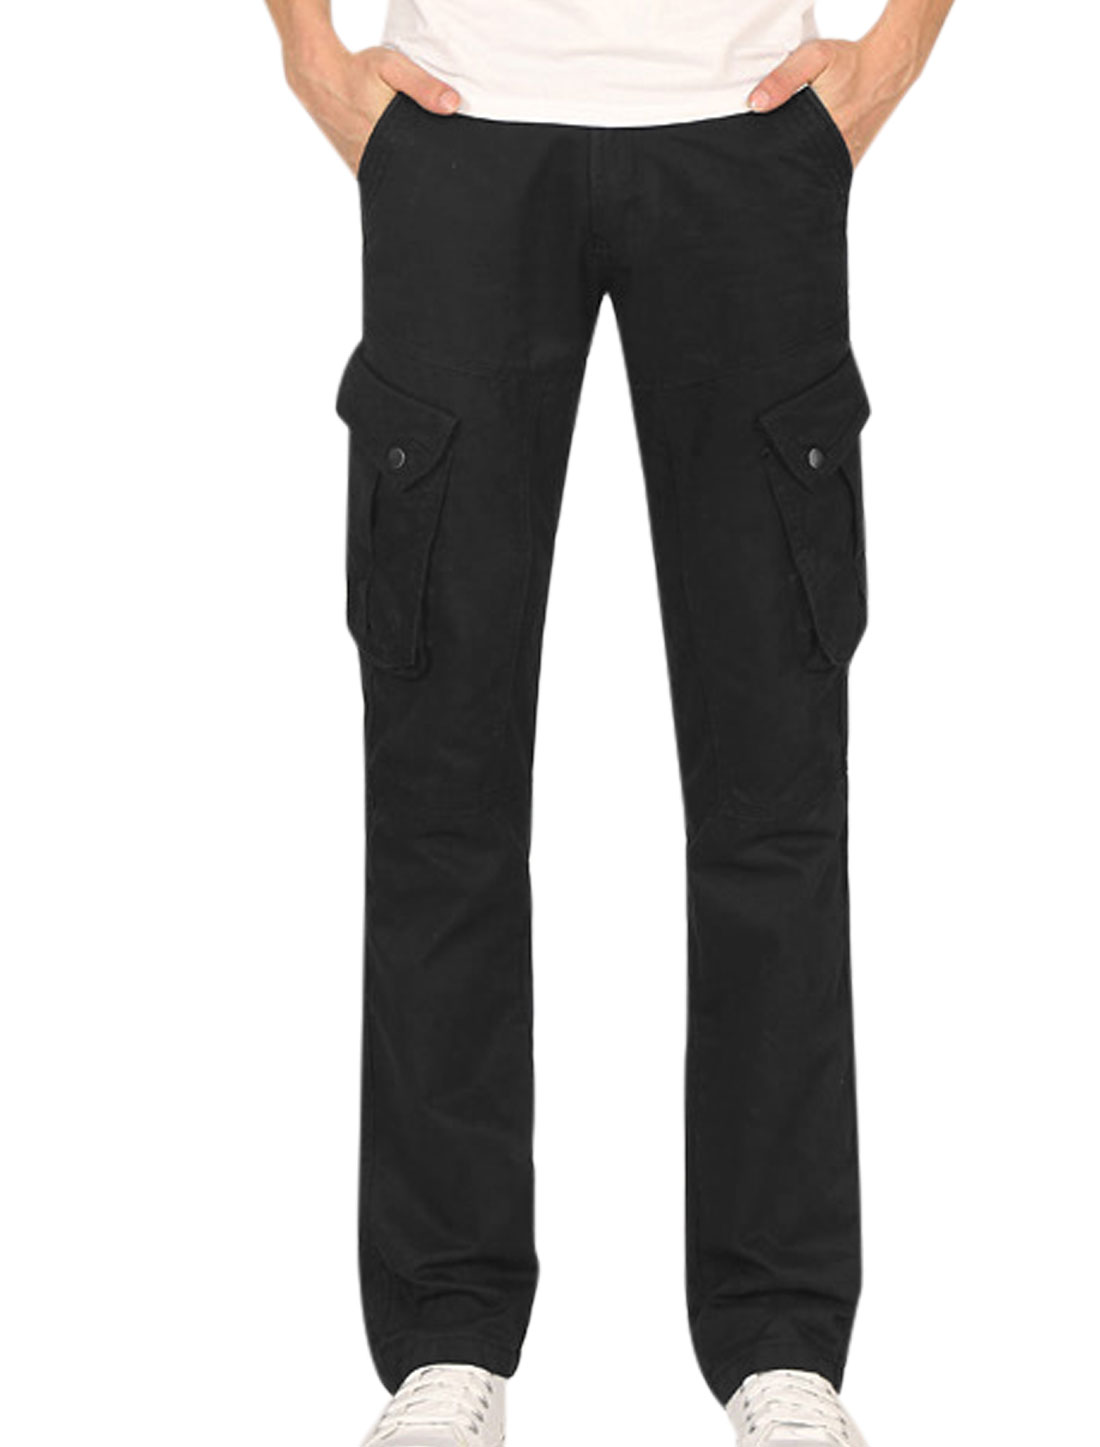 New Stylish Mid Rise Pocket Sides Black Cargo Pants for Man W34